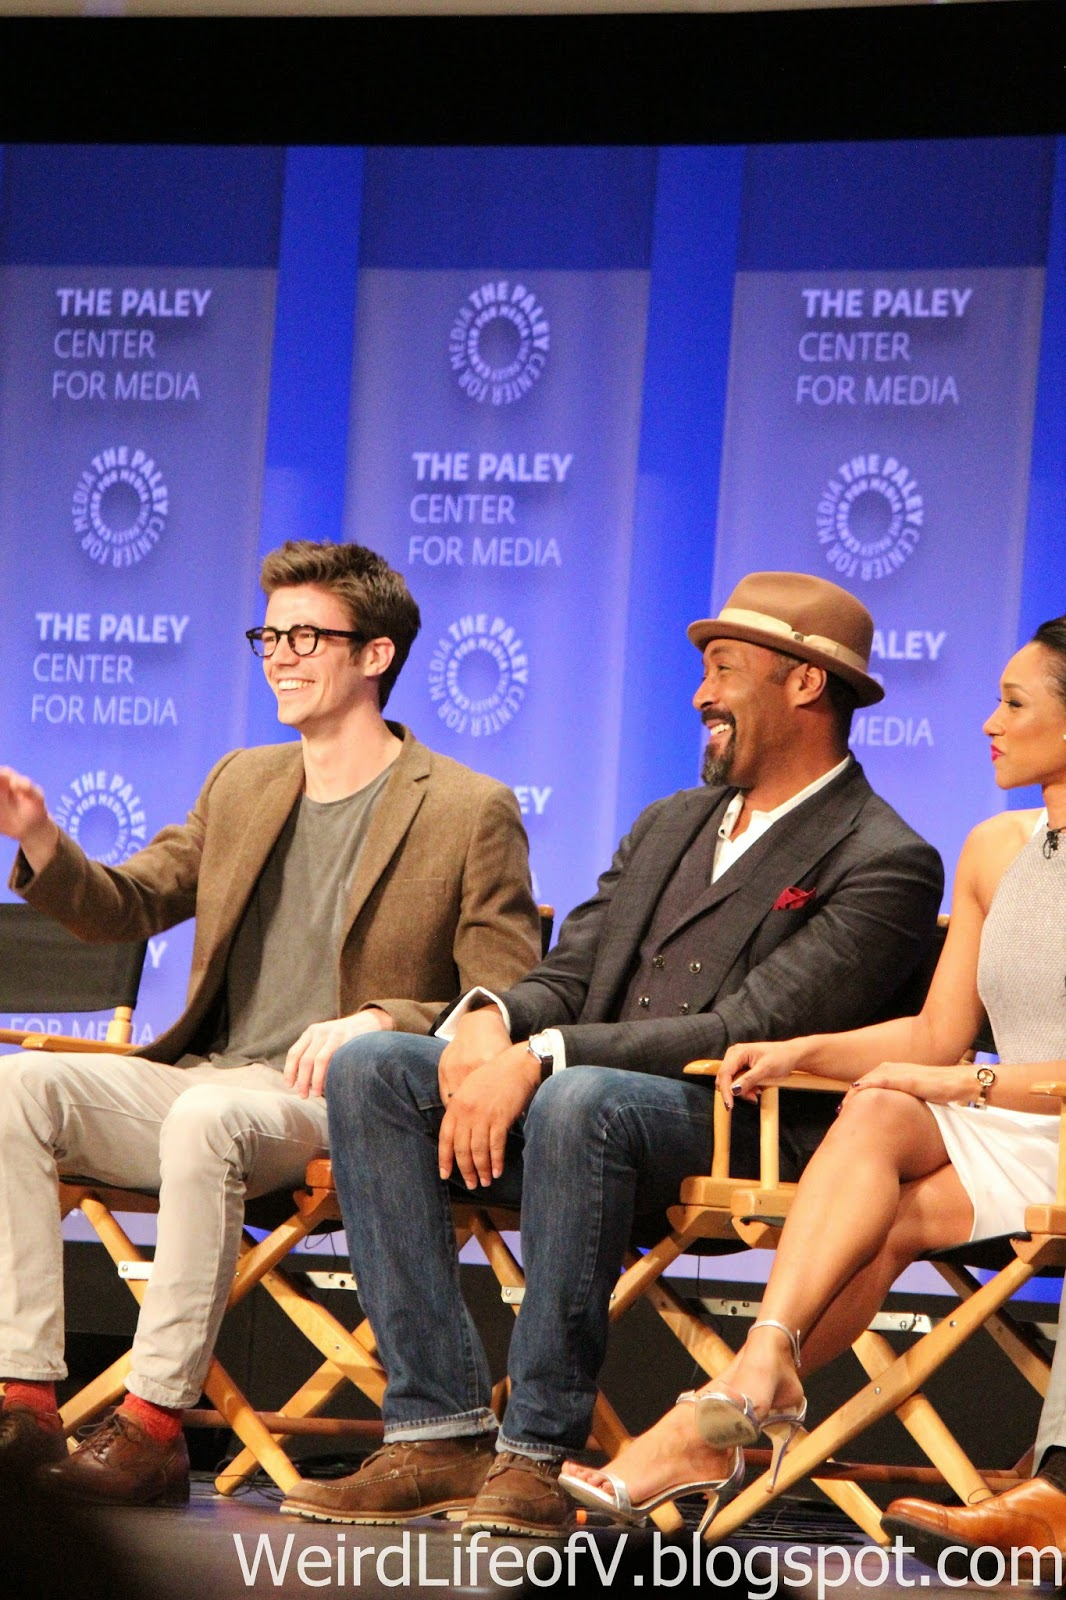 Grant Gustin and Jesse L. Martin laughing